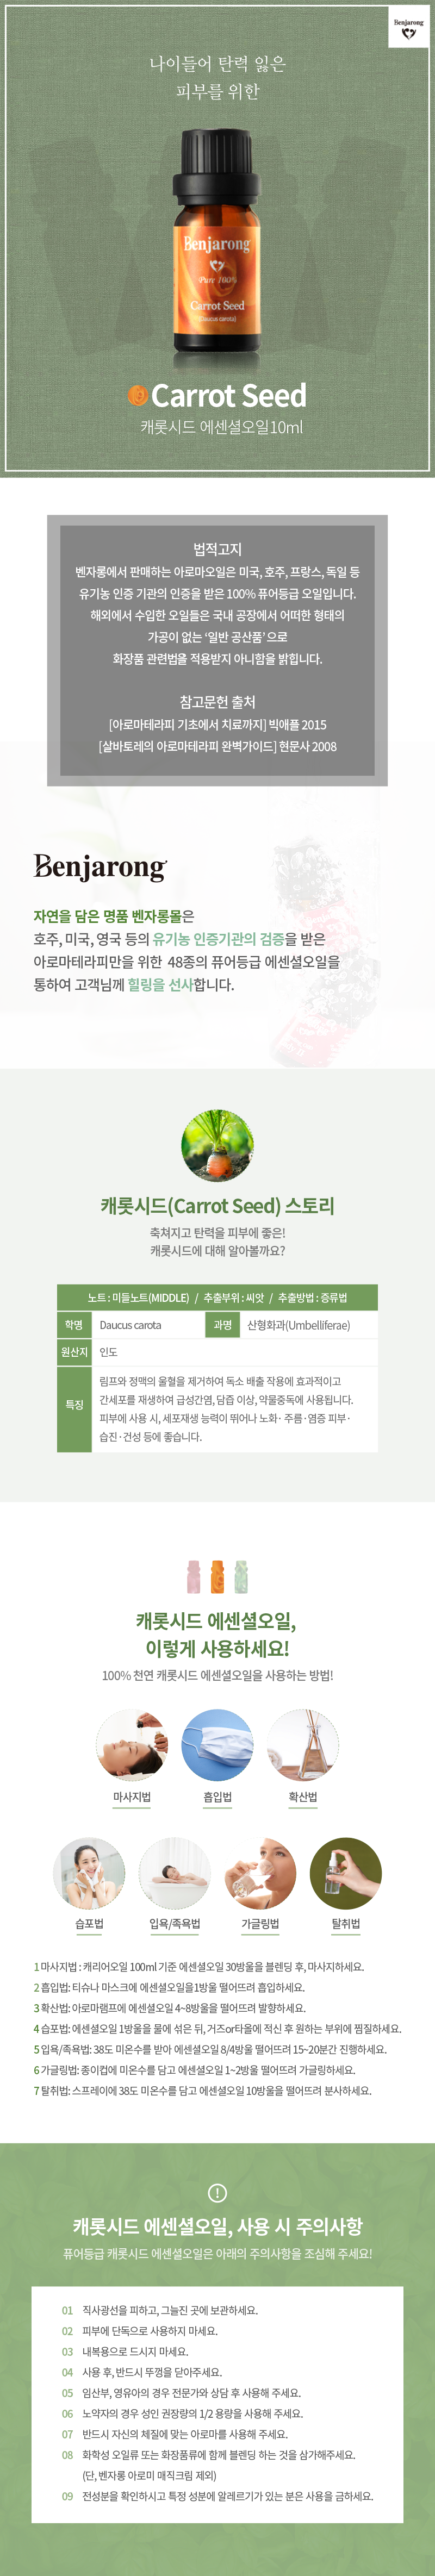 1532492121M_Carrot%20Seed.png